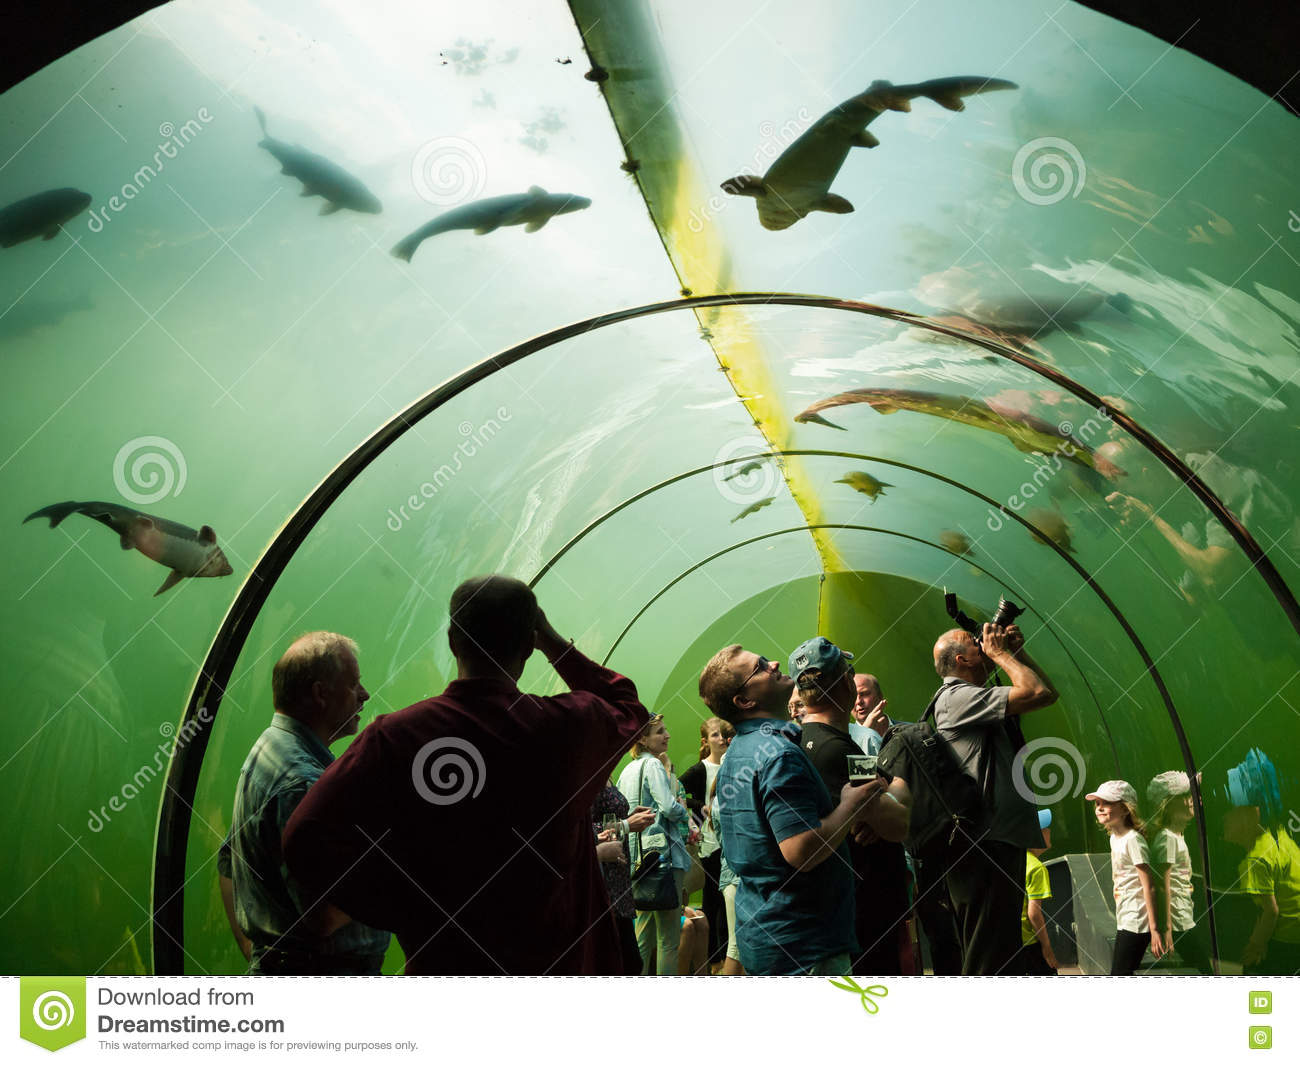 Freshwater aquarium fish by region - People In The Freshwater Aquarium Tunnel Look At The Fish Editorial Photography